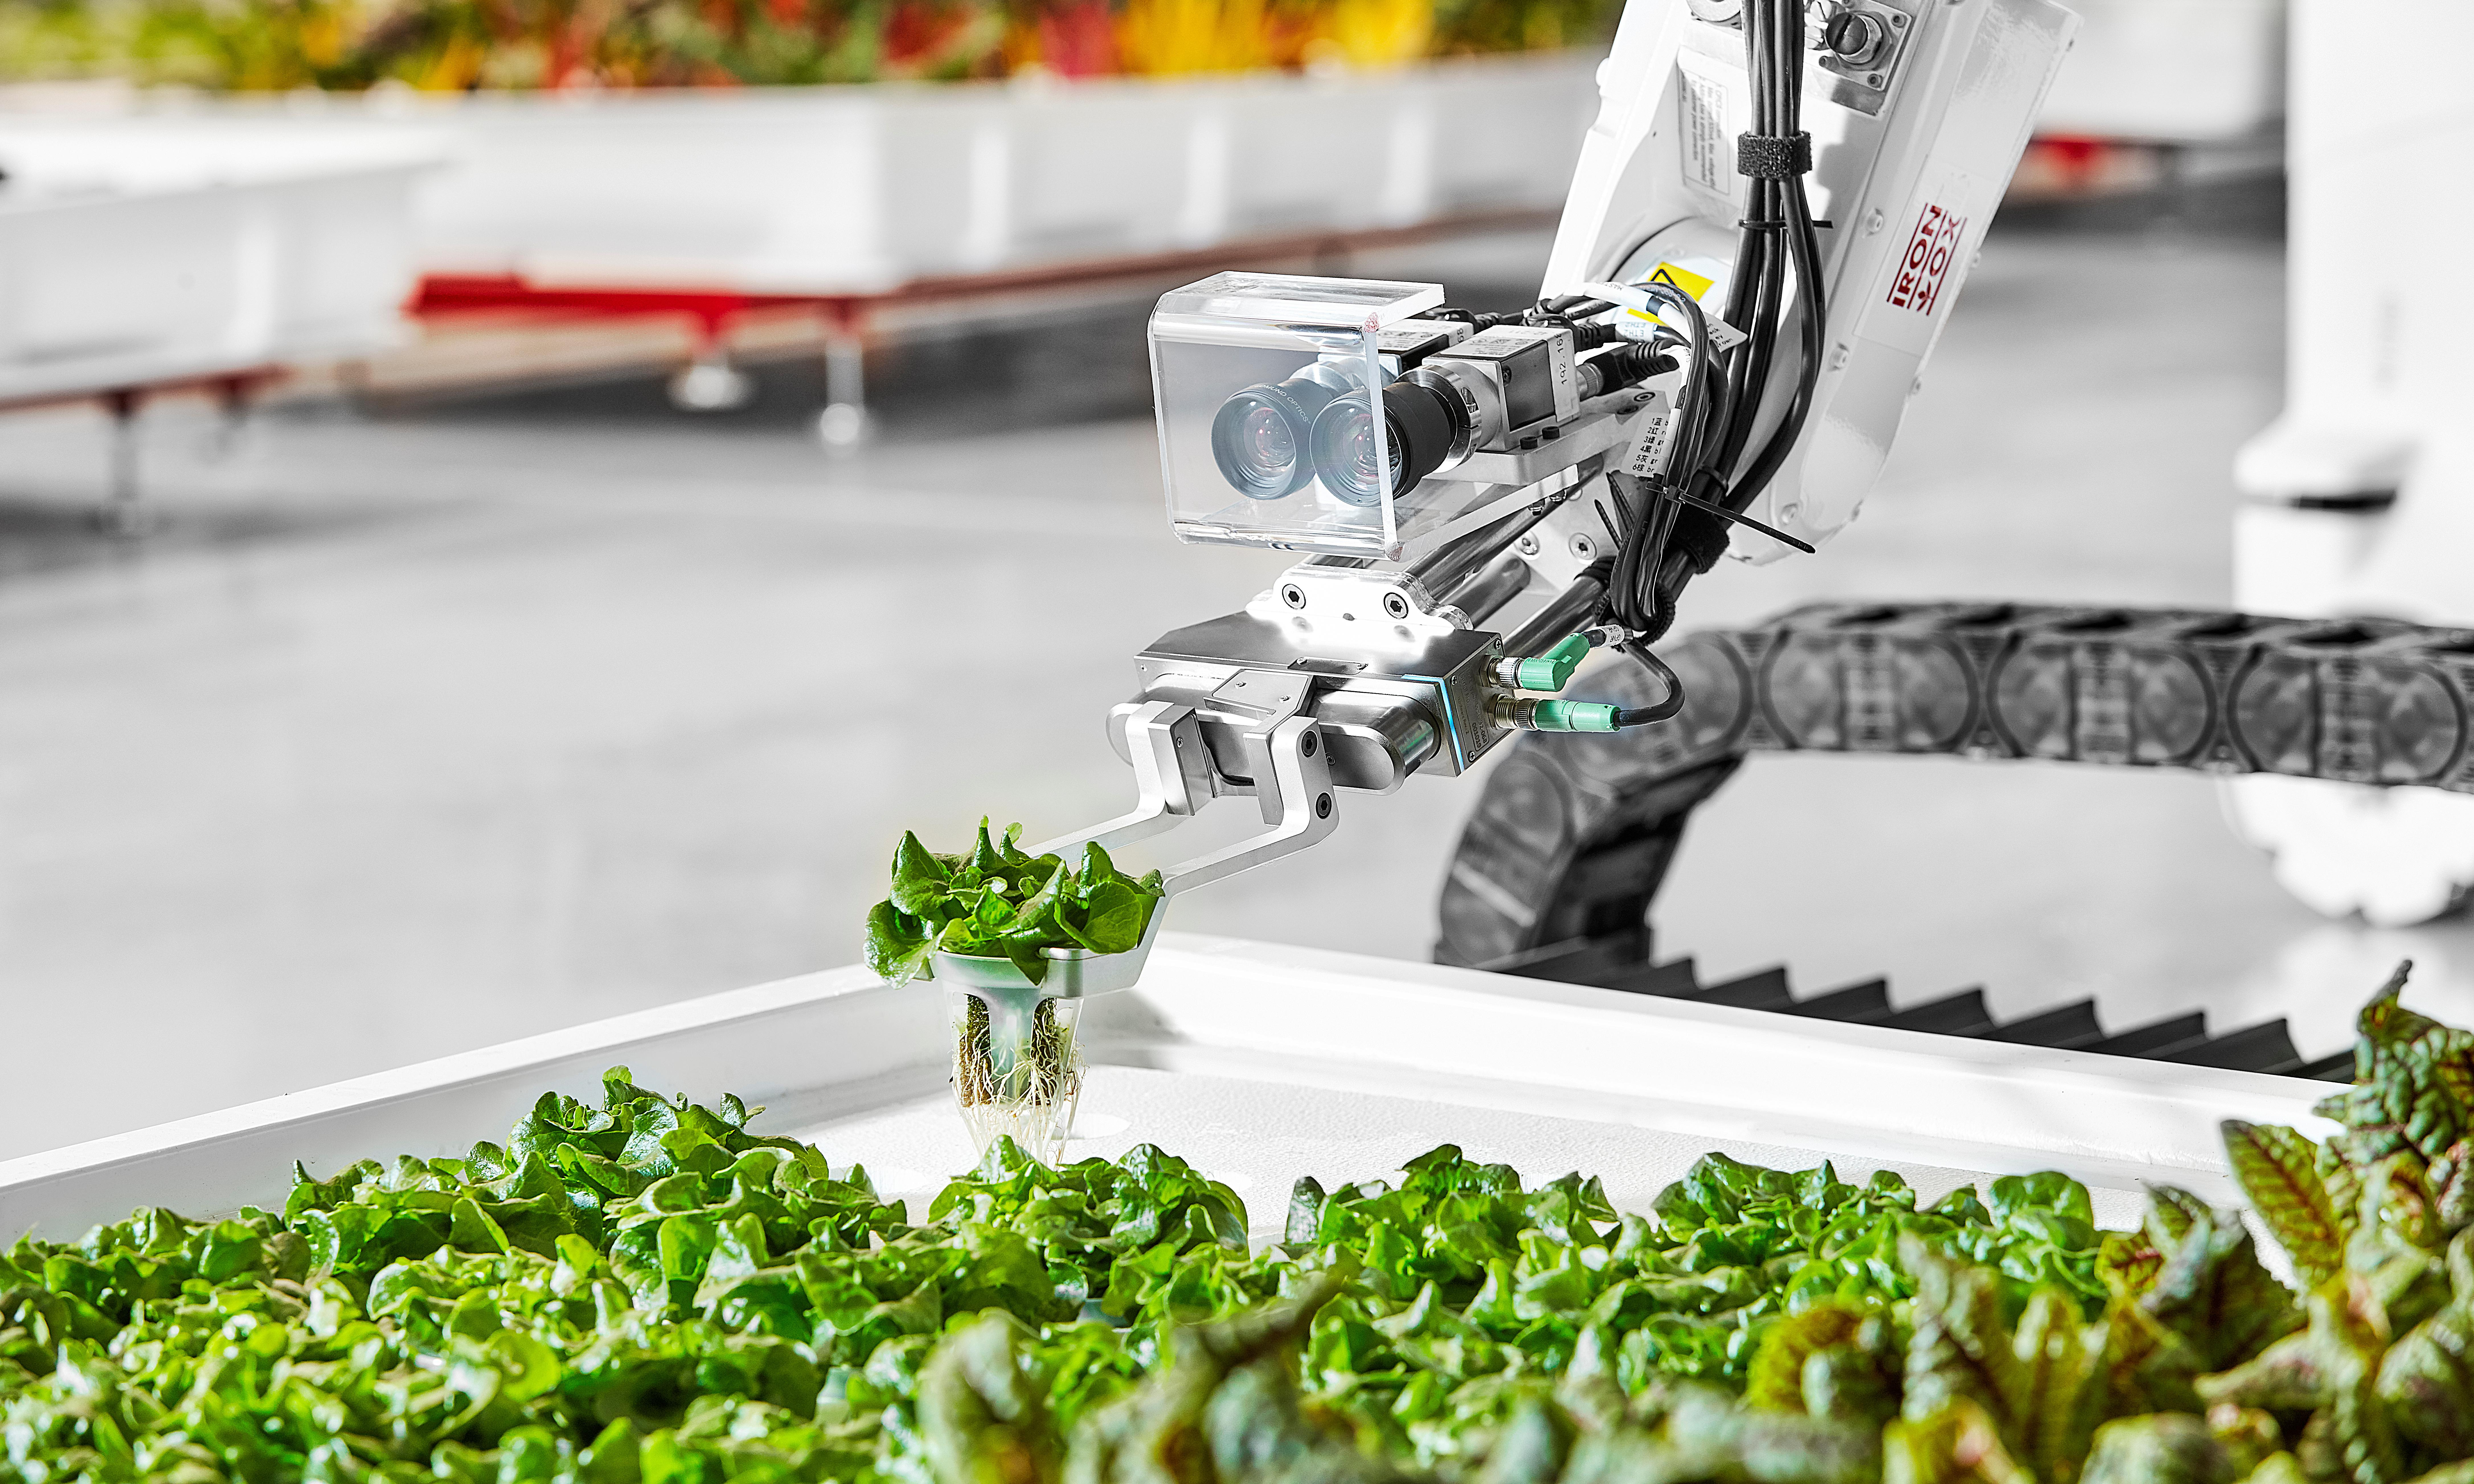 America's first autonomous robot farm replaces humans with 'incredibly intelligent' machines